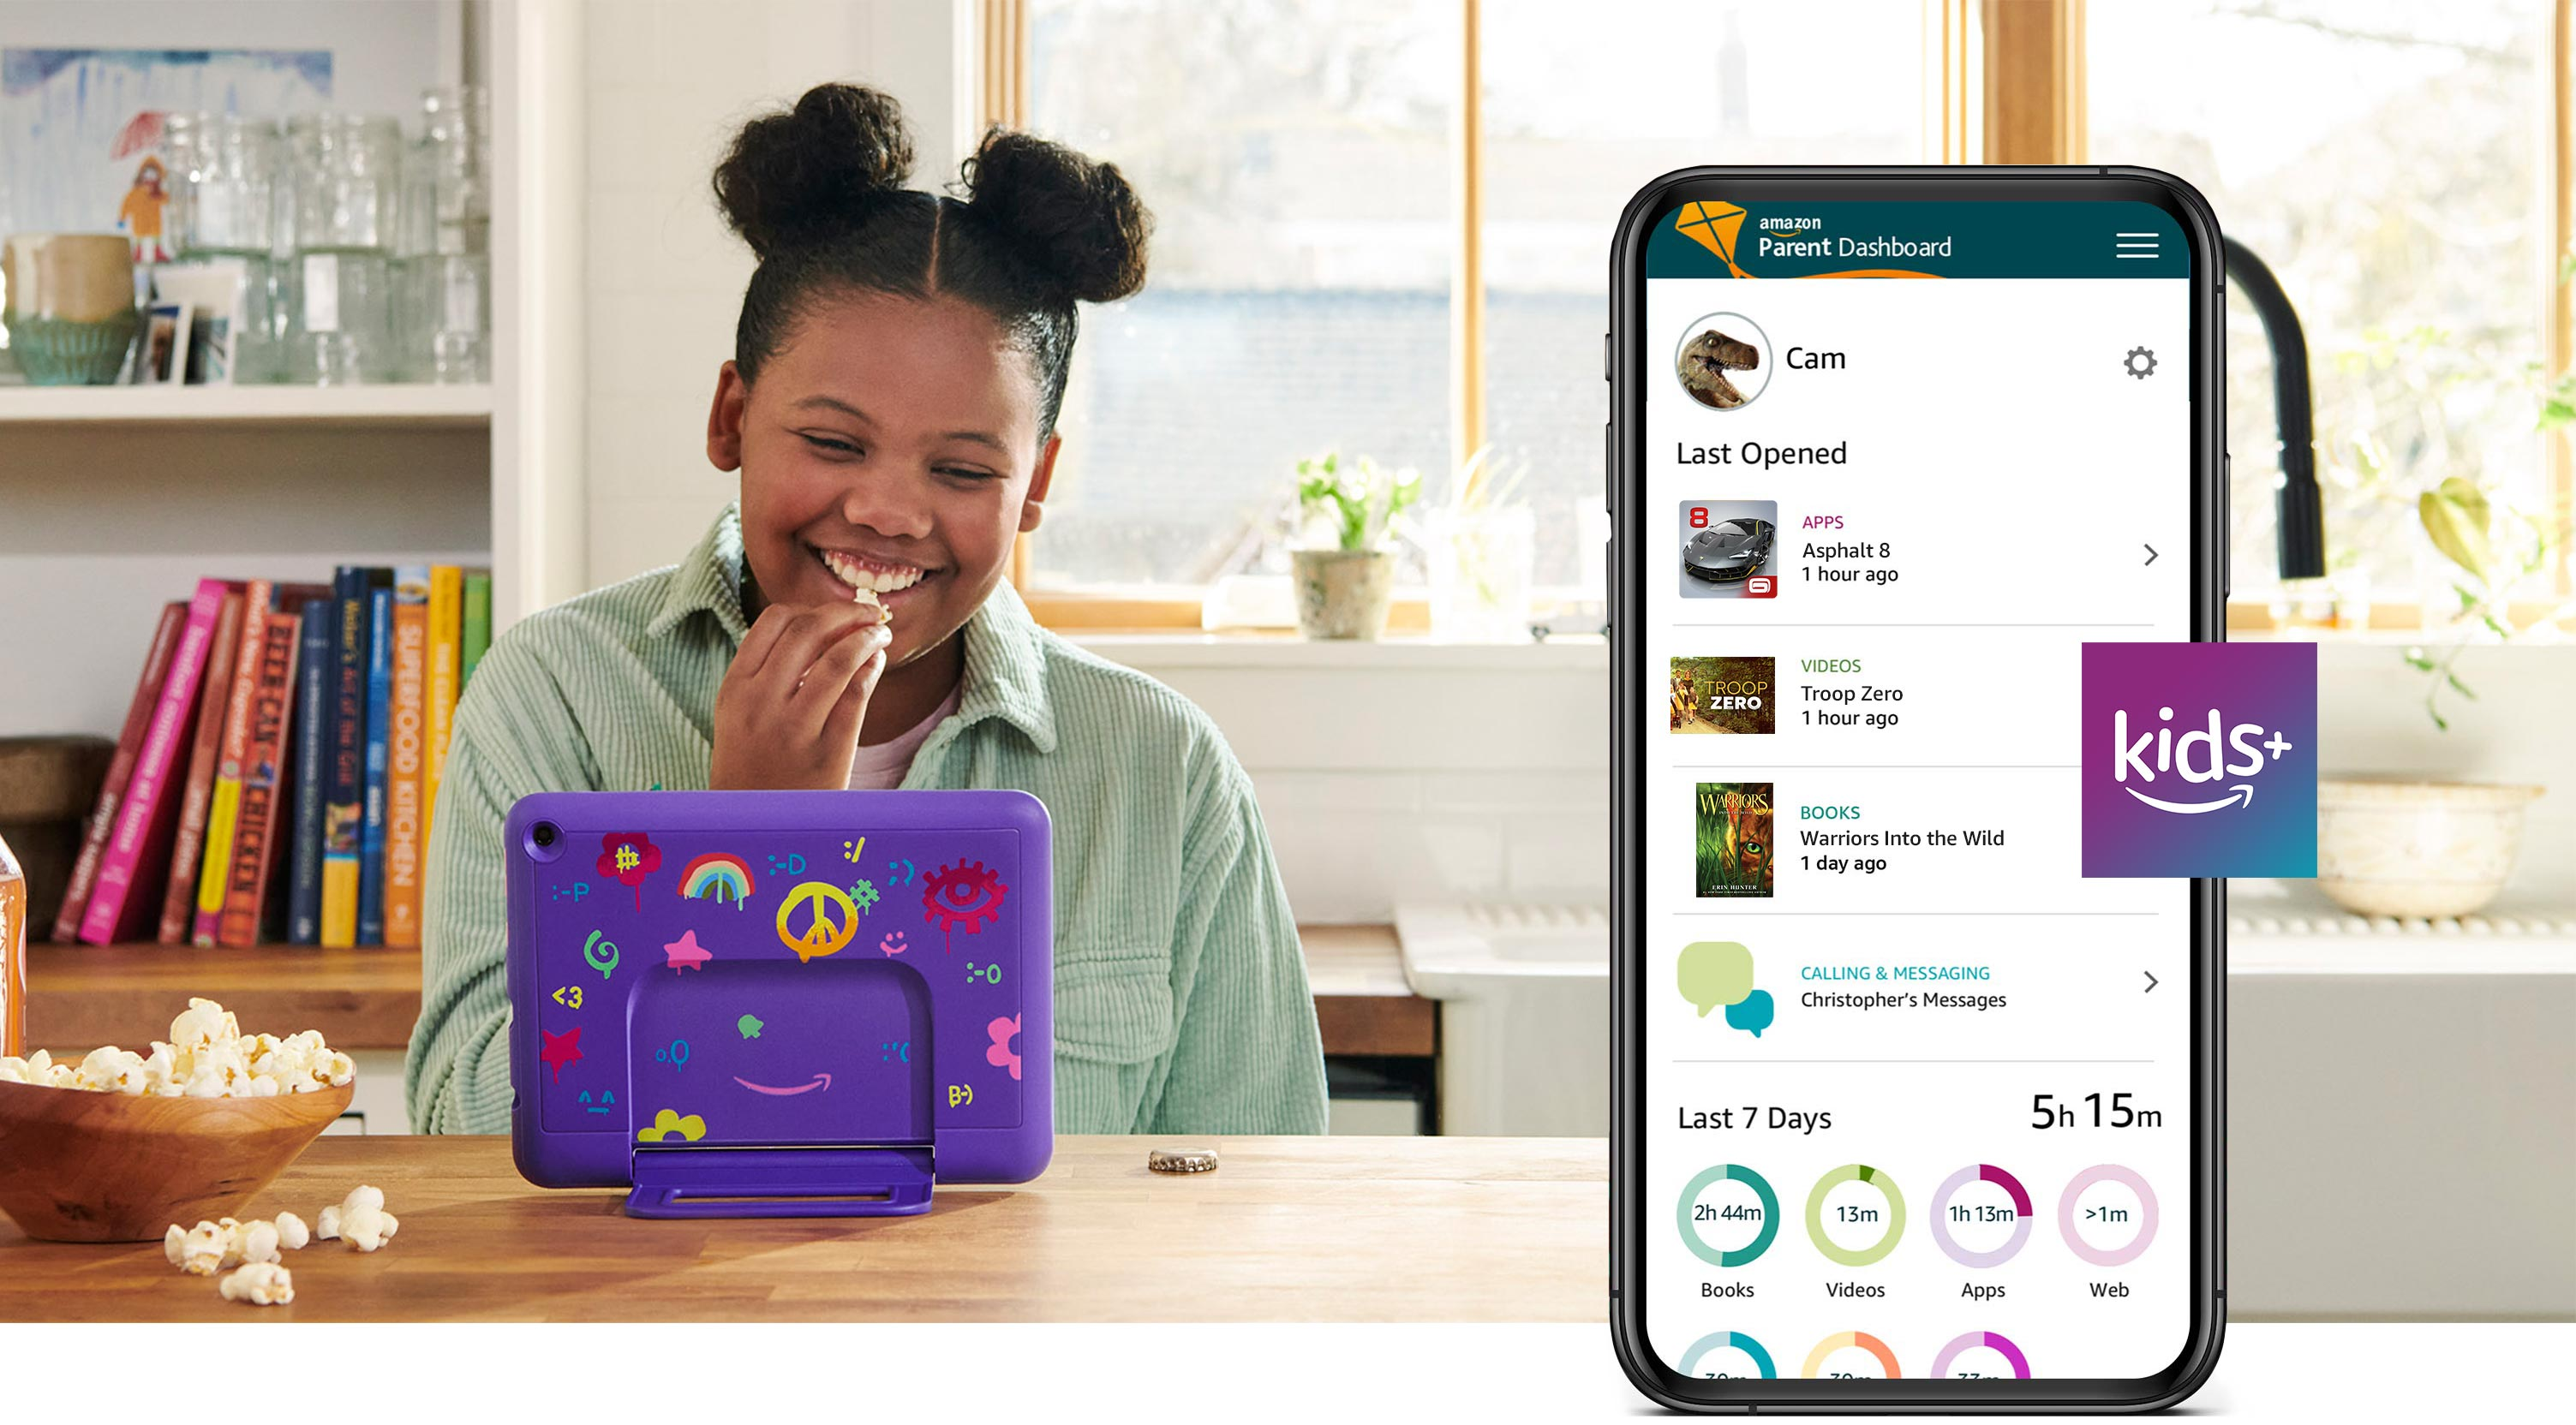 Female child using Fire HD 8 Kids Pro while seated at kitchen table, eating popcorn and smiling.